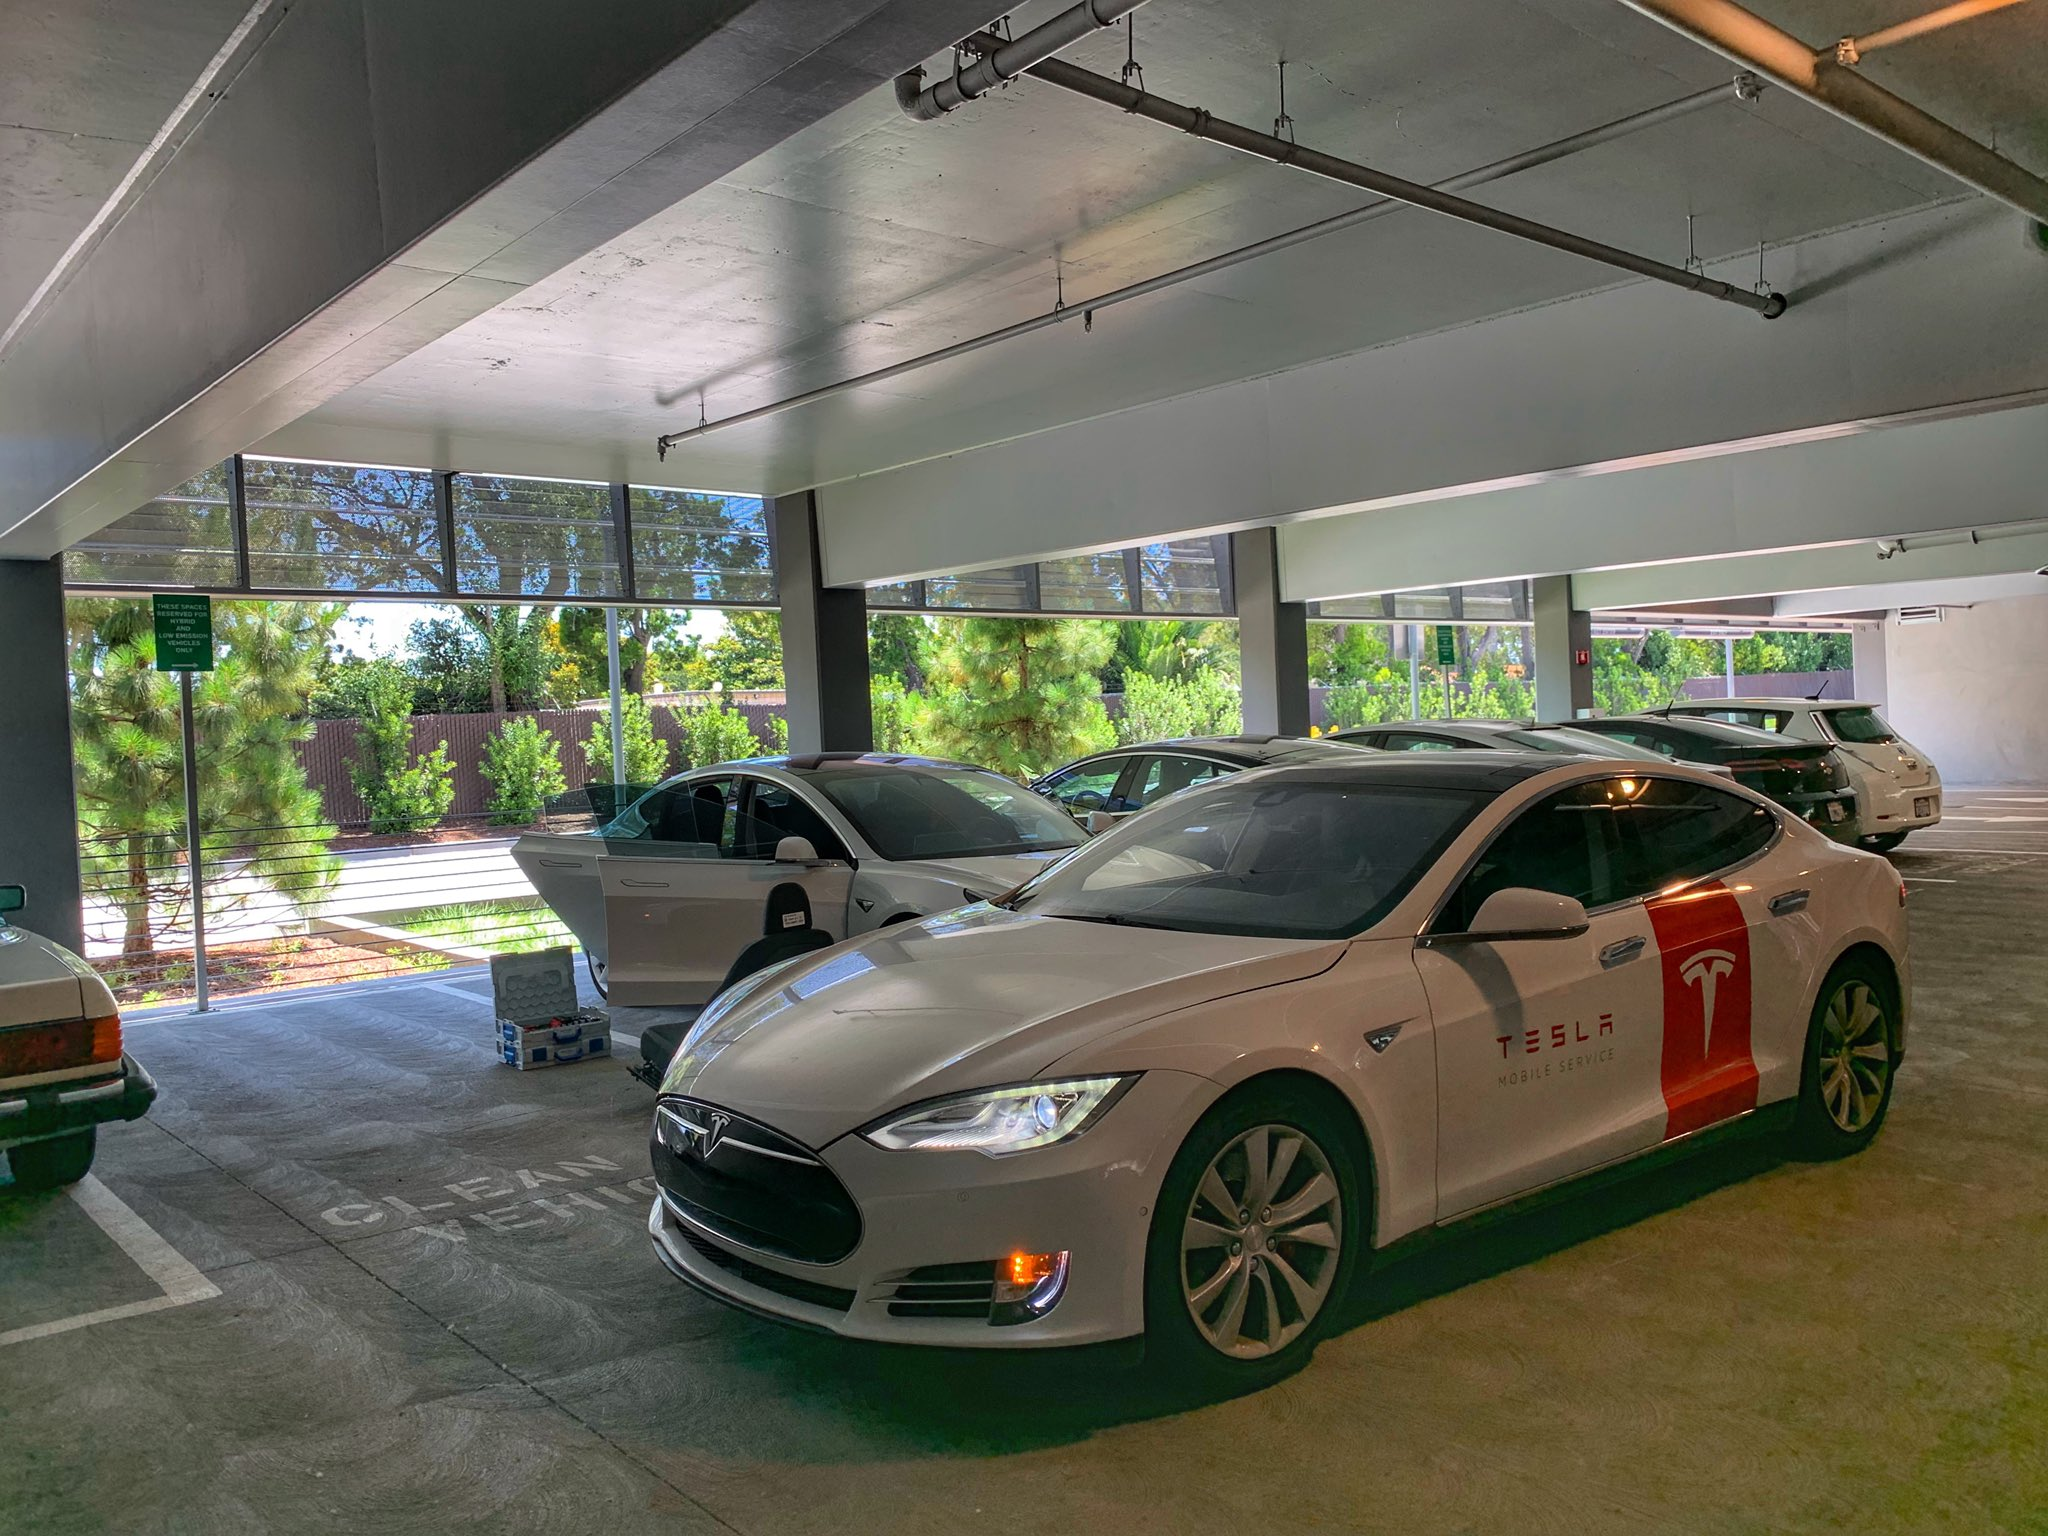 Tesla Raj On Twitter Hi Raj This Is Tesla Mobile Service We Wanted To Take Care Of Your Service Appointment You Made On The App What Time Works Best For You